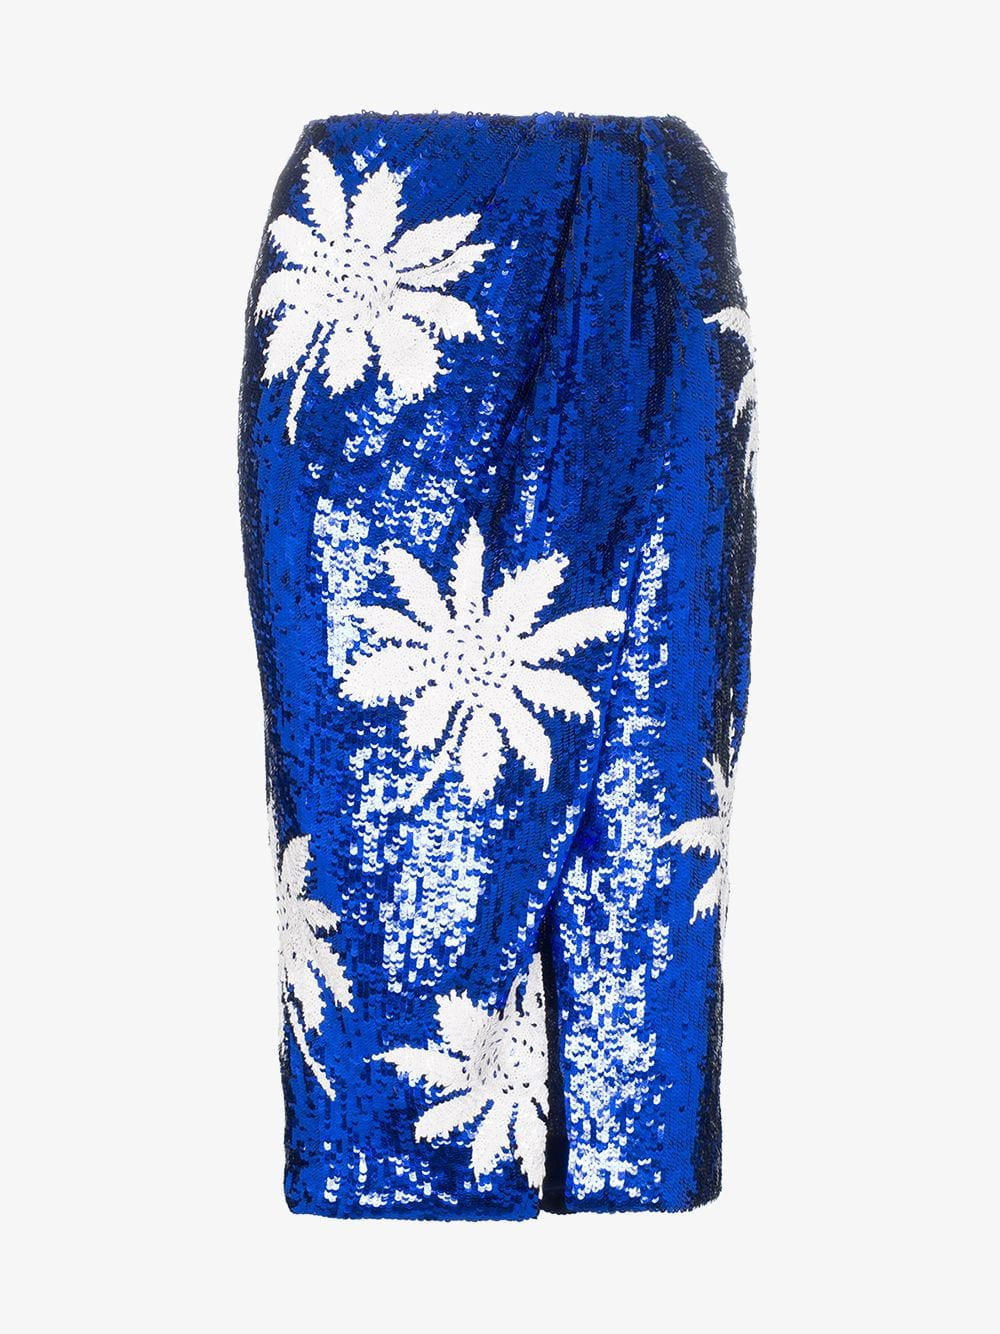 Filles A Papa high-waisted floral sequin embellished skirt in blue